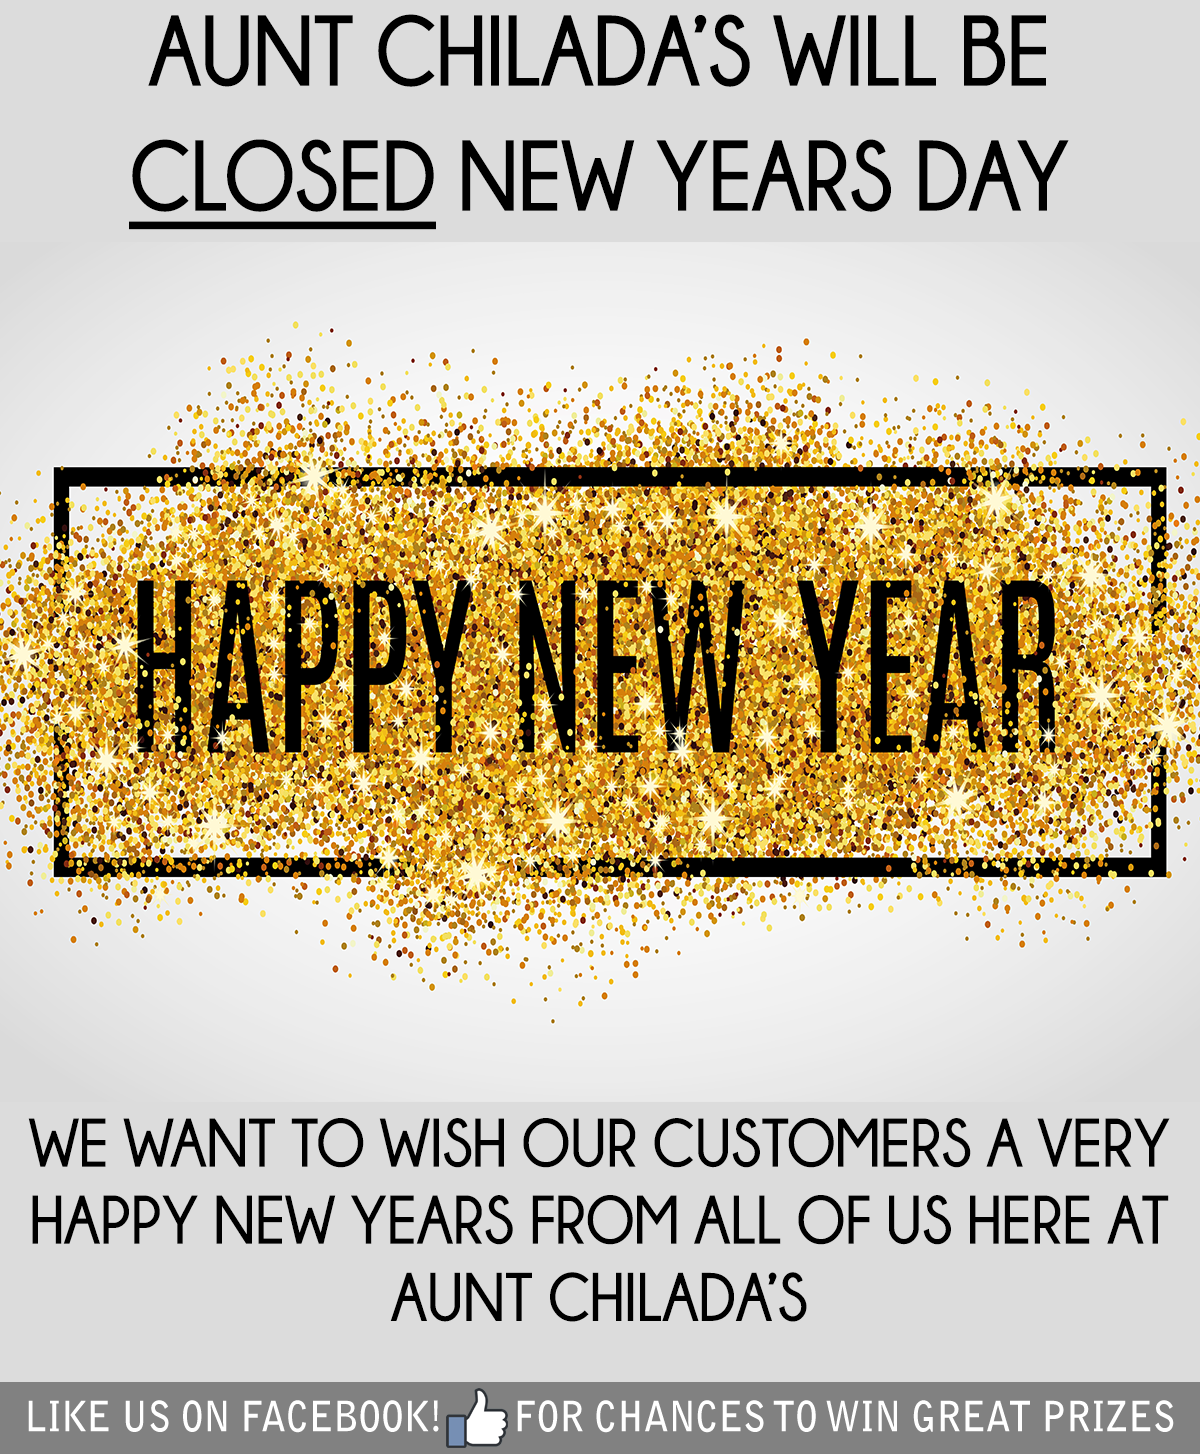 Aunt chilada's will be closed new years day. Happy new year. We want to wish our customers a very happy new year from all of us here at aunt chilada's. Like us on facebook for chances to win great prizes.